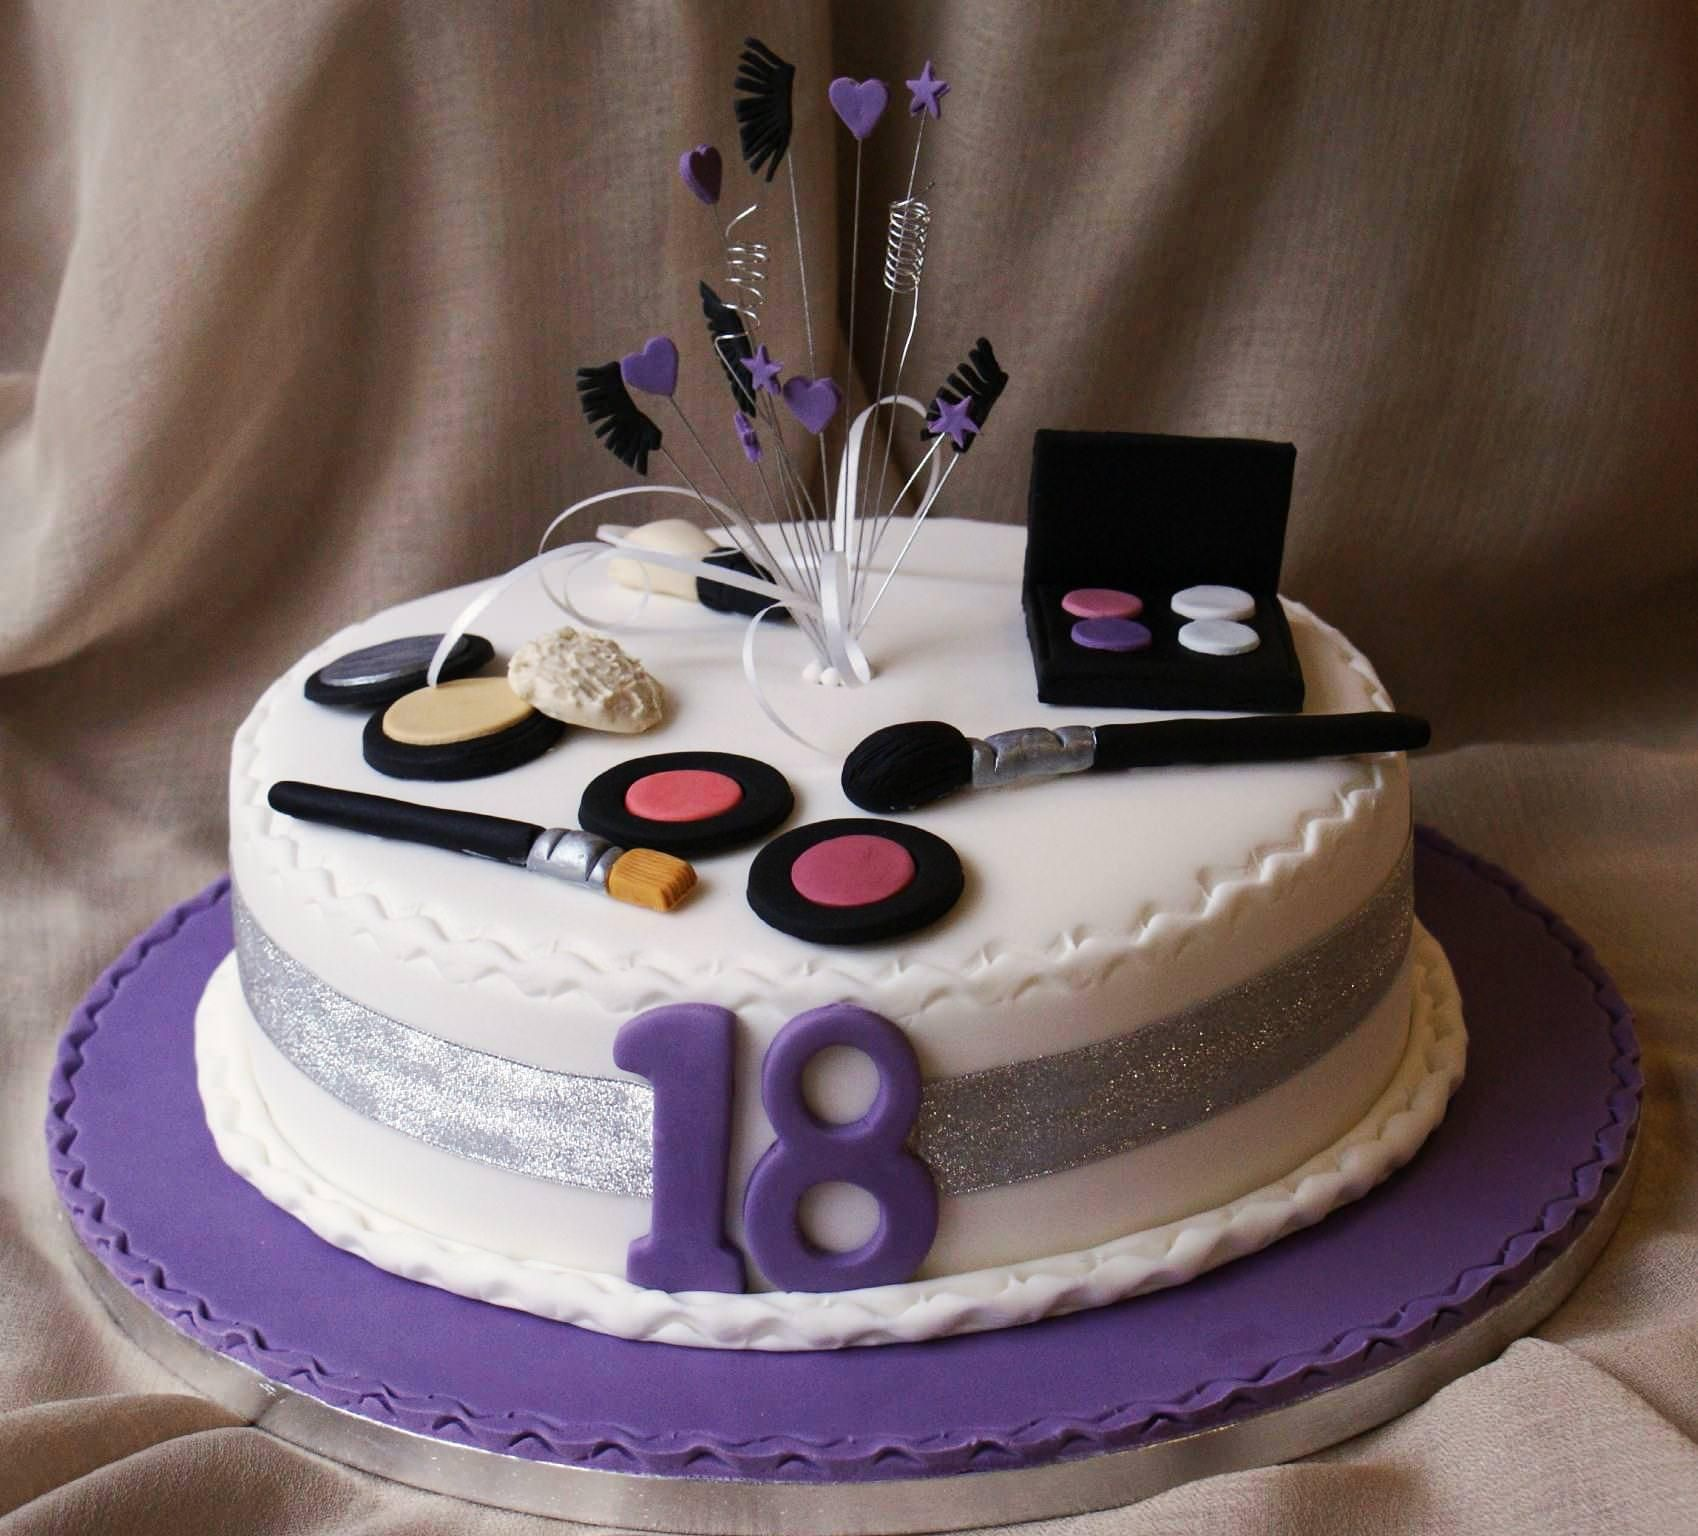 Cake Decorating Ideas Boy Birthday : 18th Birthday Cakes both for Boys and Girls cake ideas ...